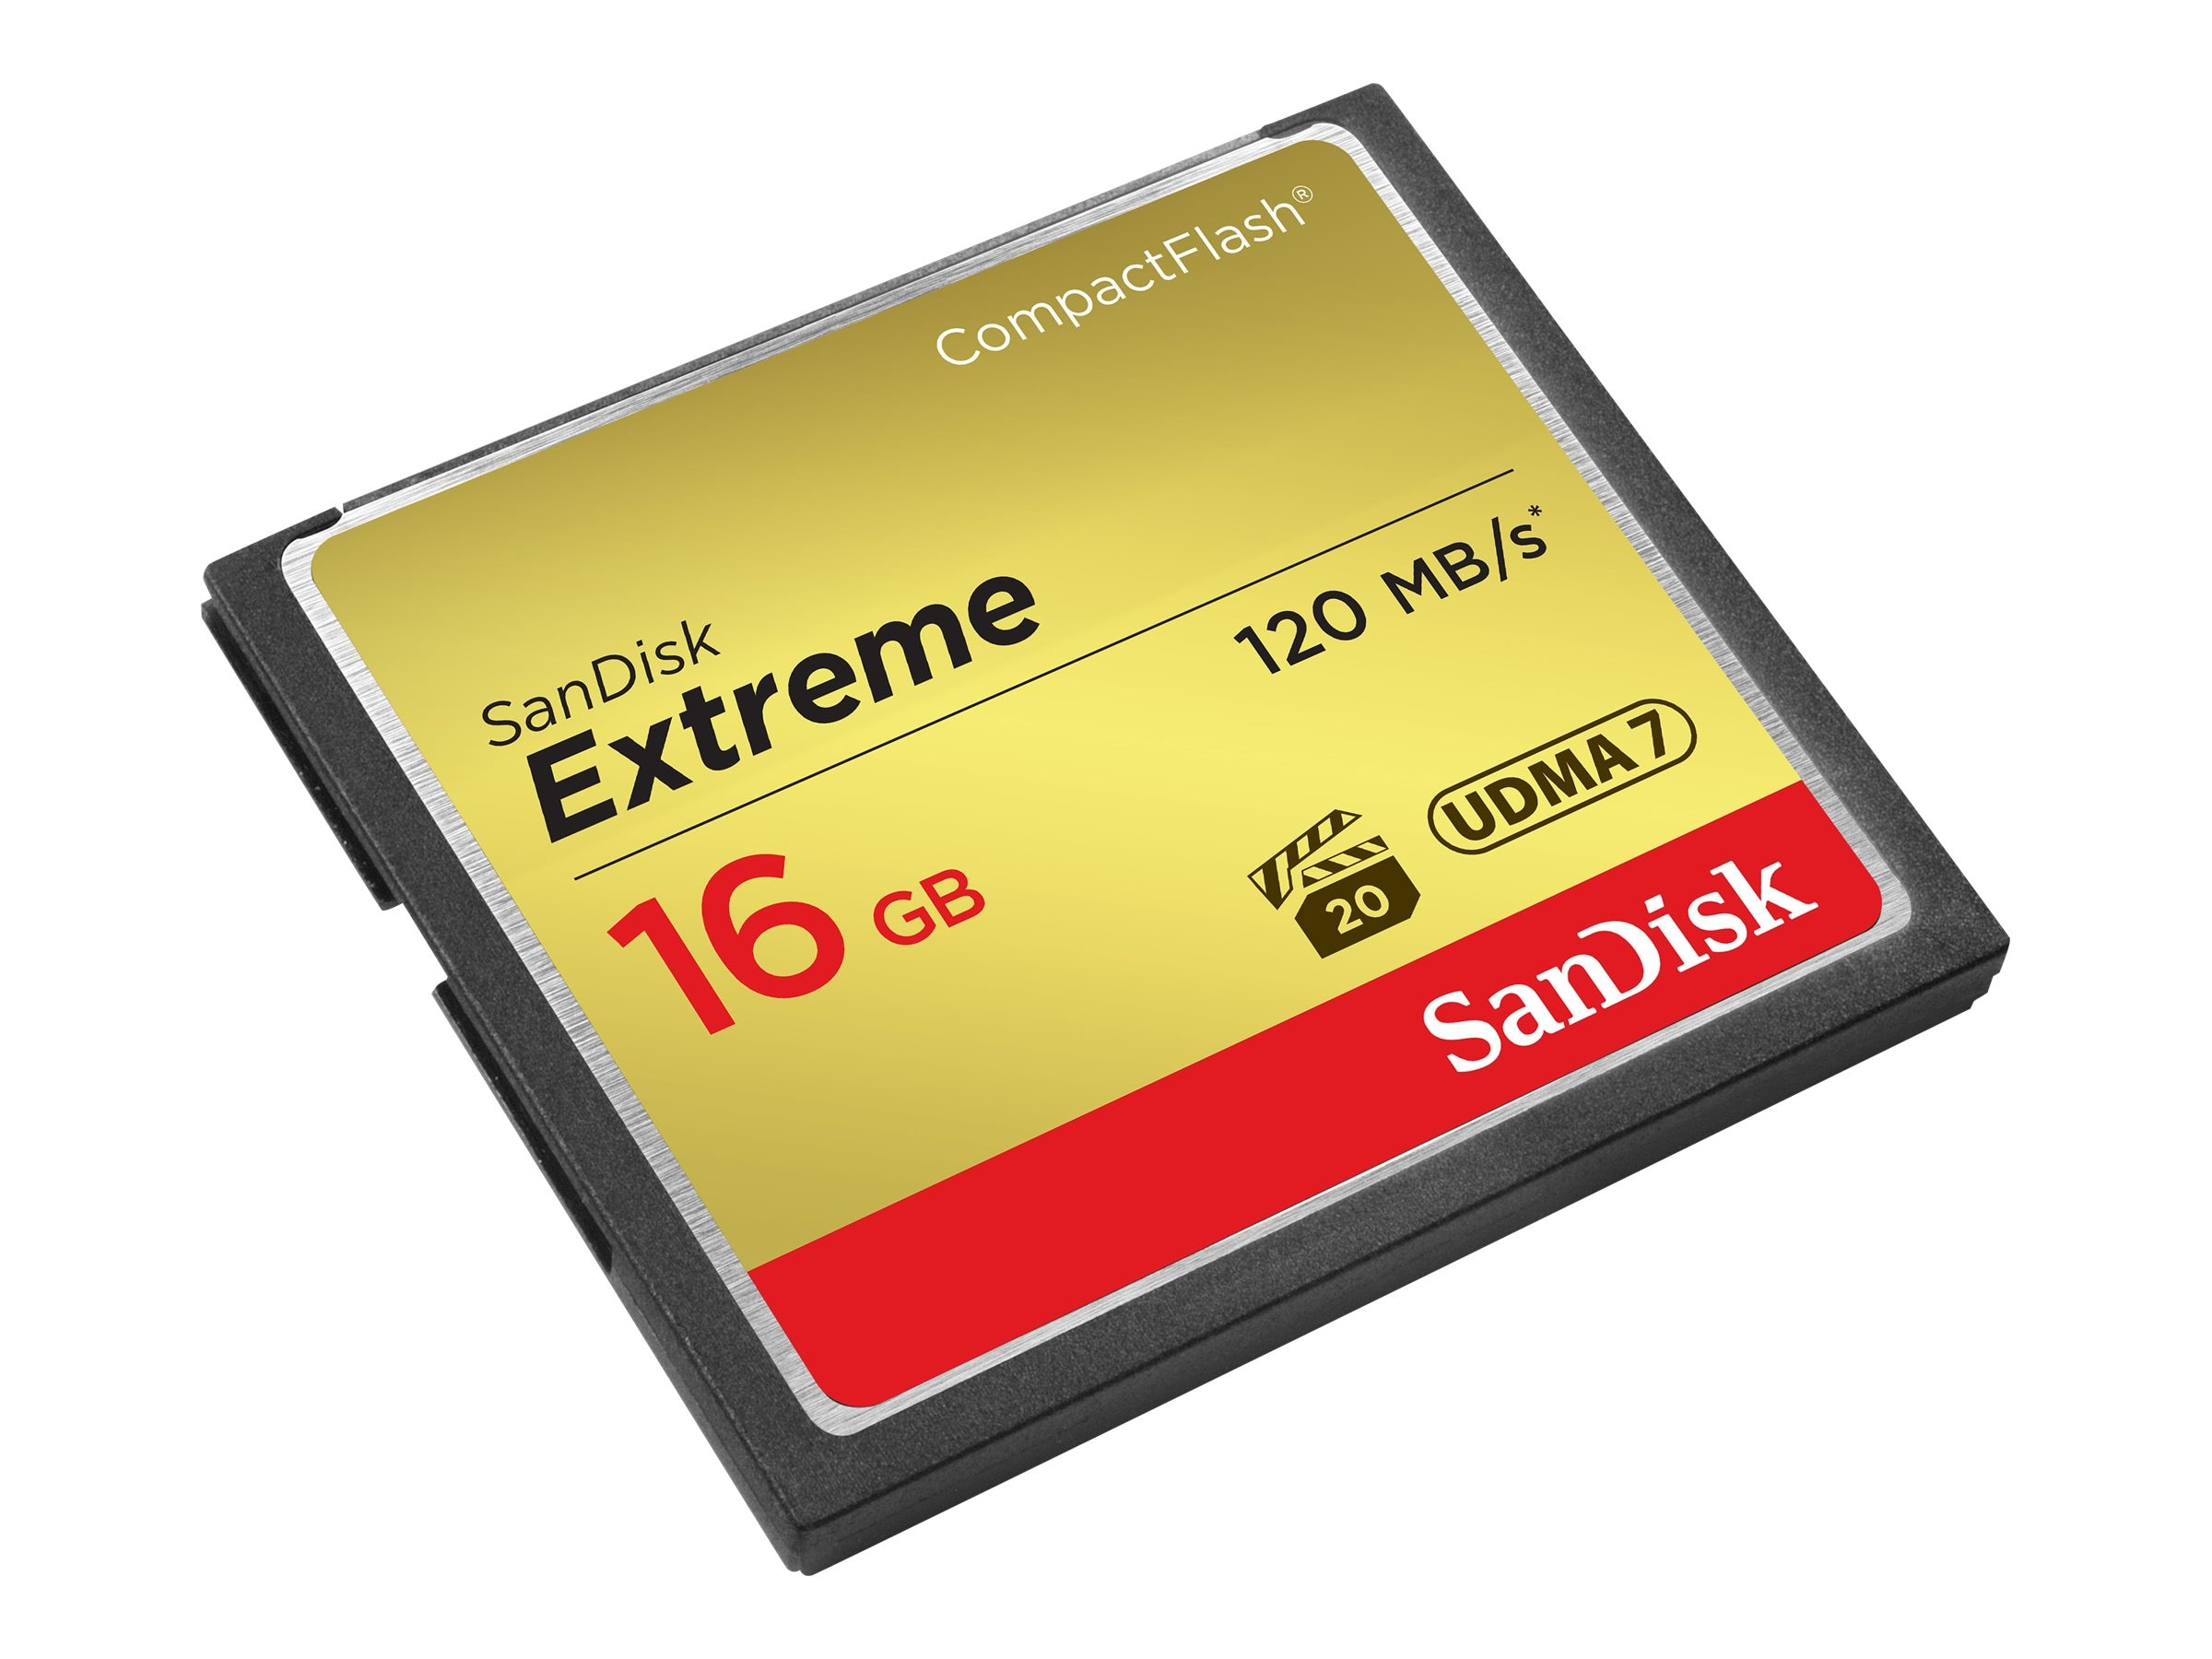 SanDisk 16GB Extreme CompactFlash Memory Card, SDCFXS-016G-A46